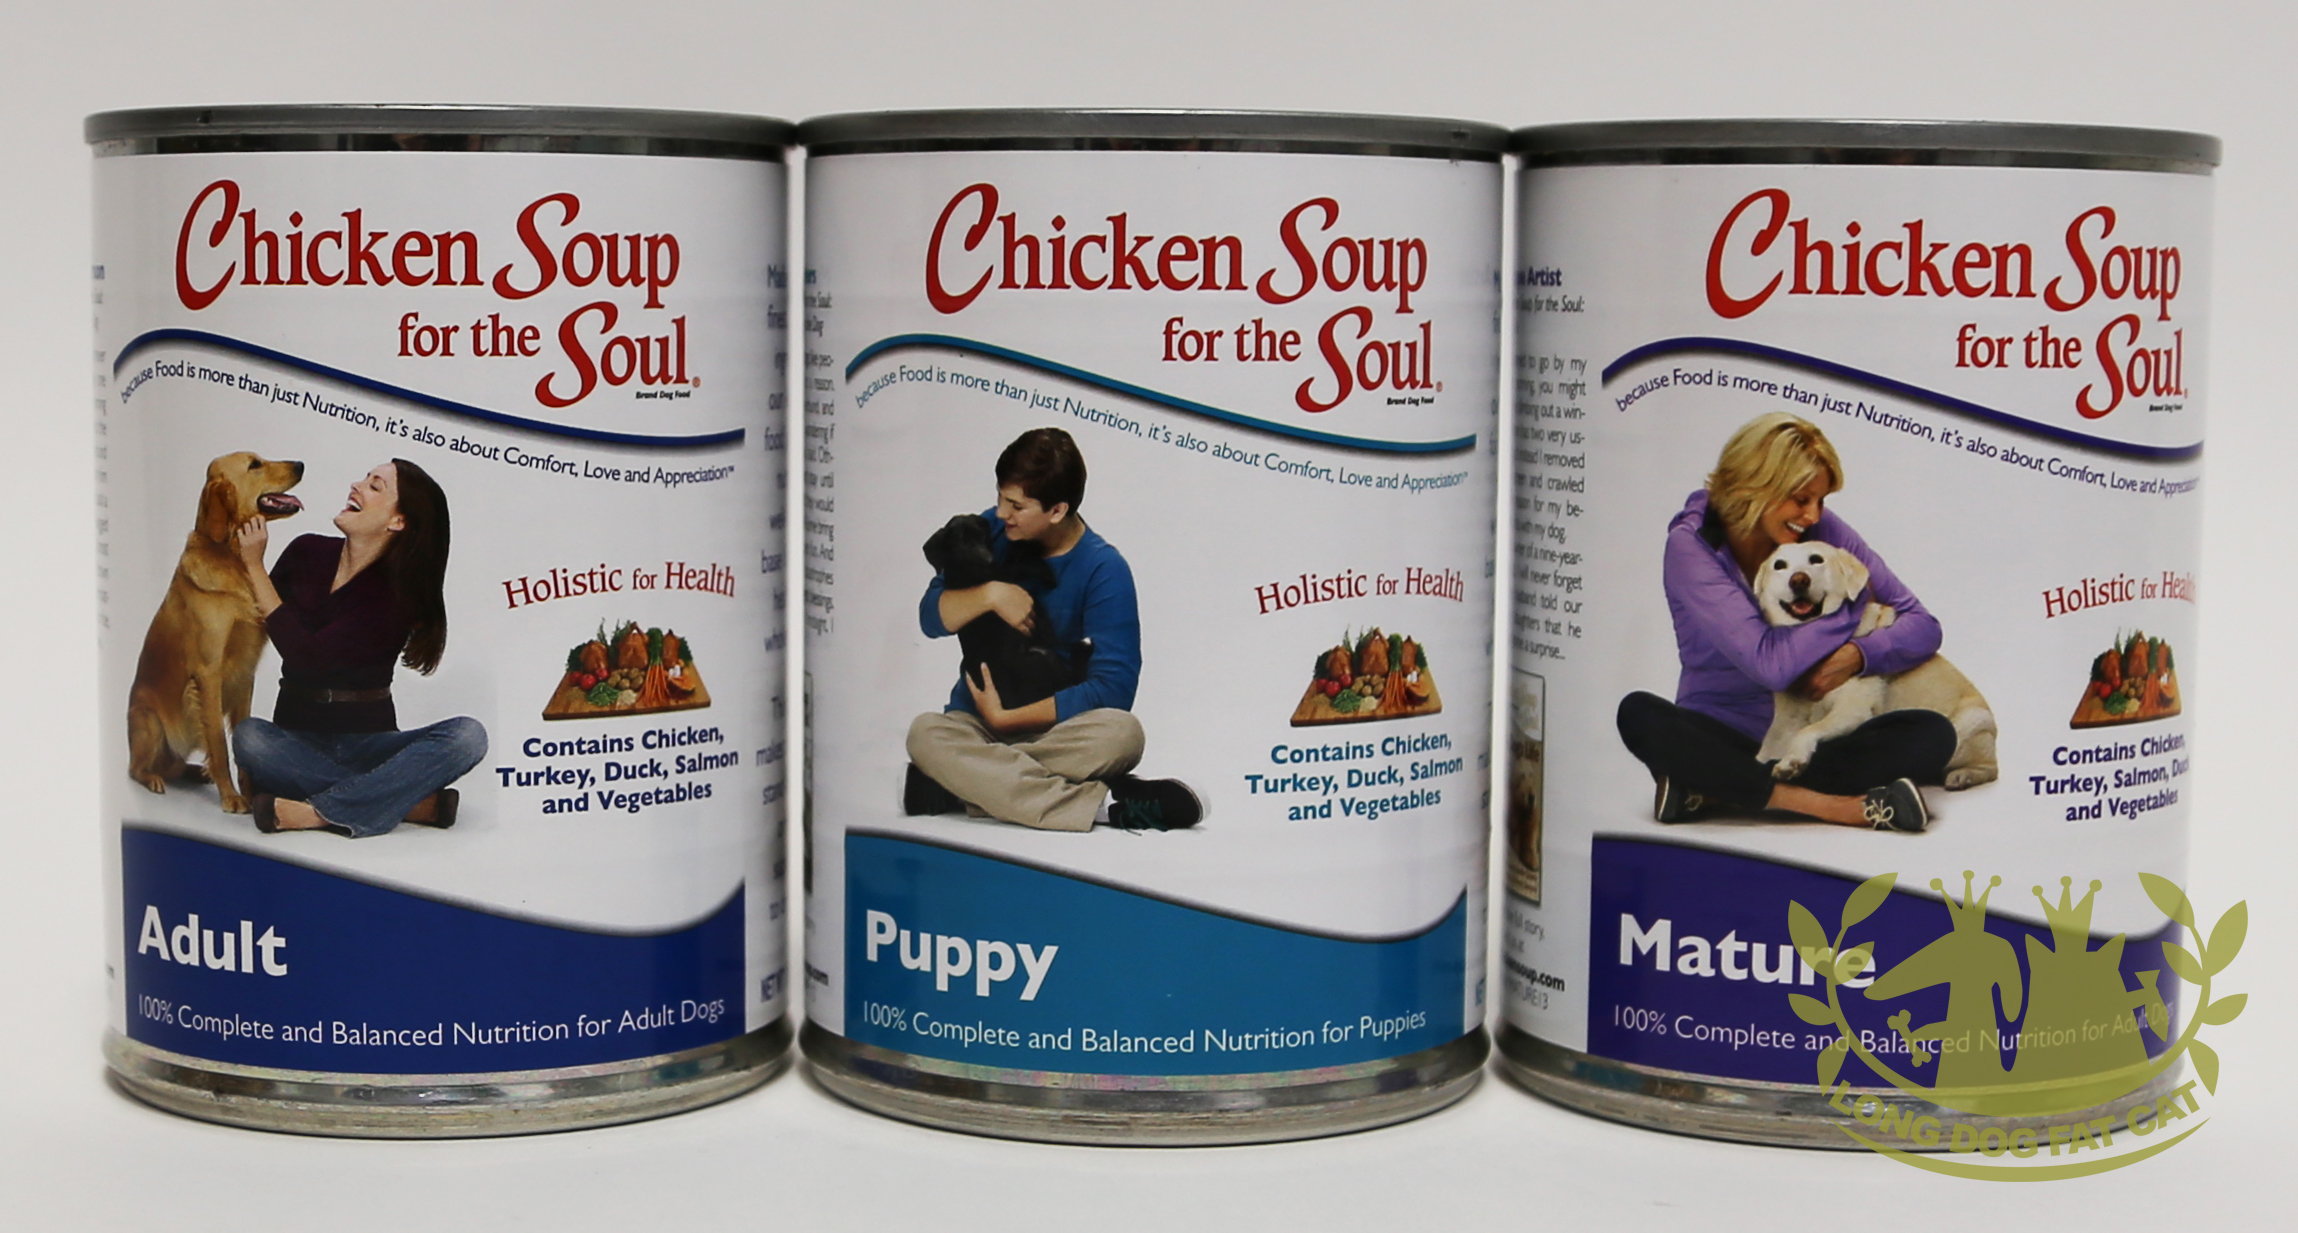 Chicken Soup For The Soul Canned Dog Food